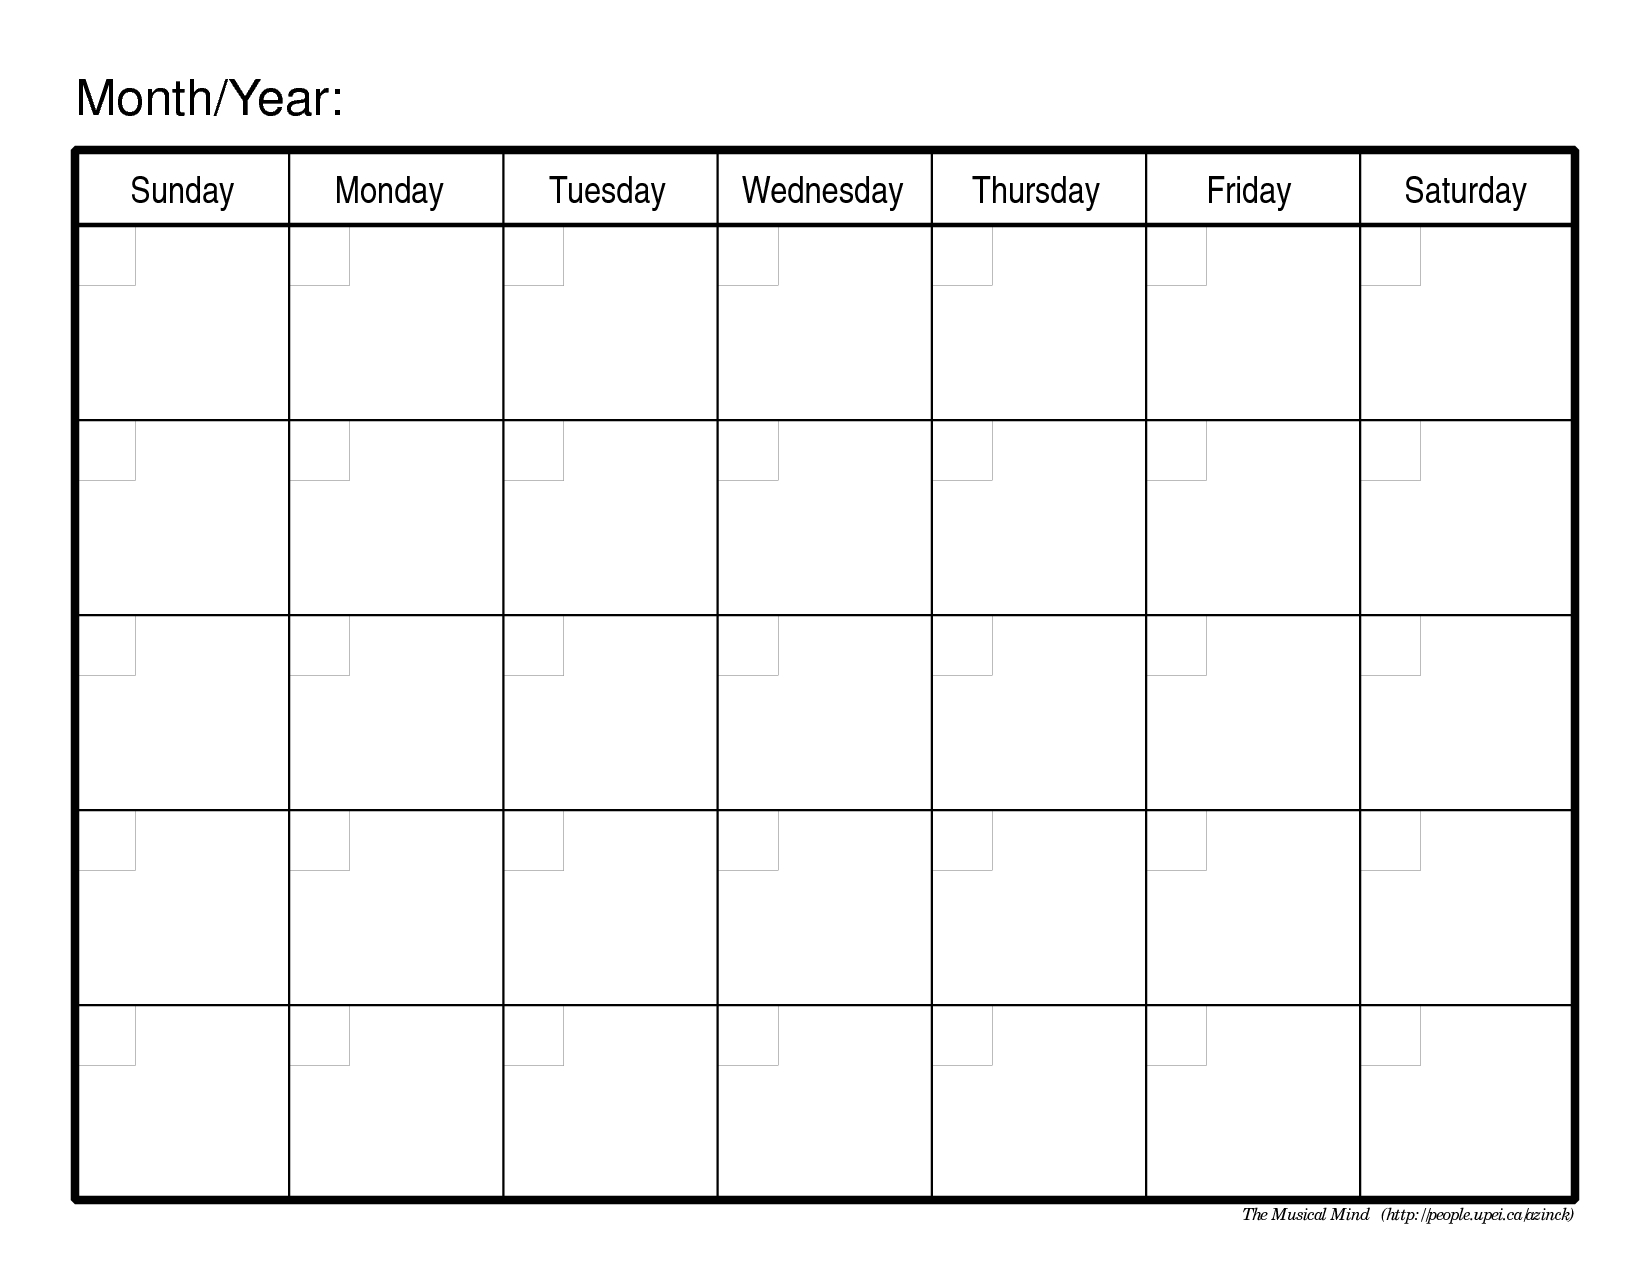 Calendar Templates Printable Free Fieldstation.co | Self Discovery within Printable Blank Monthly Calendar Template